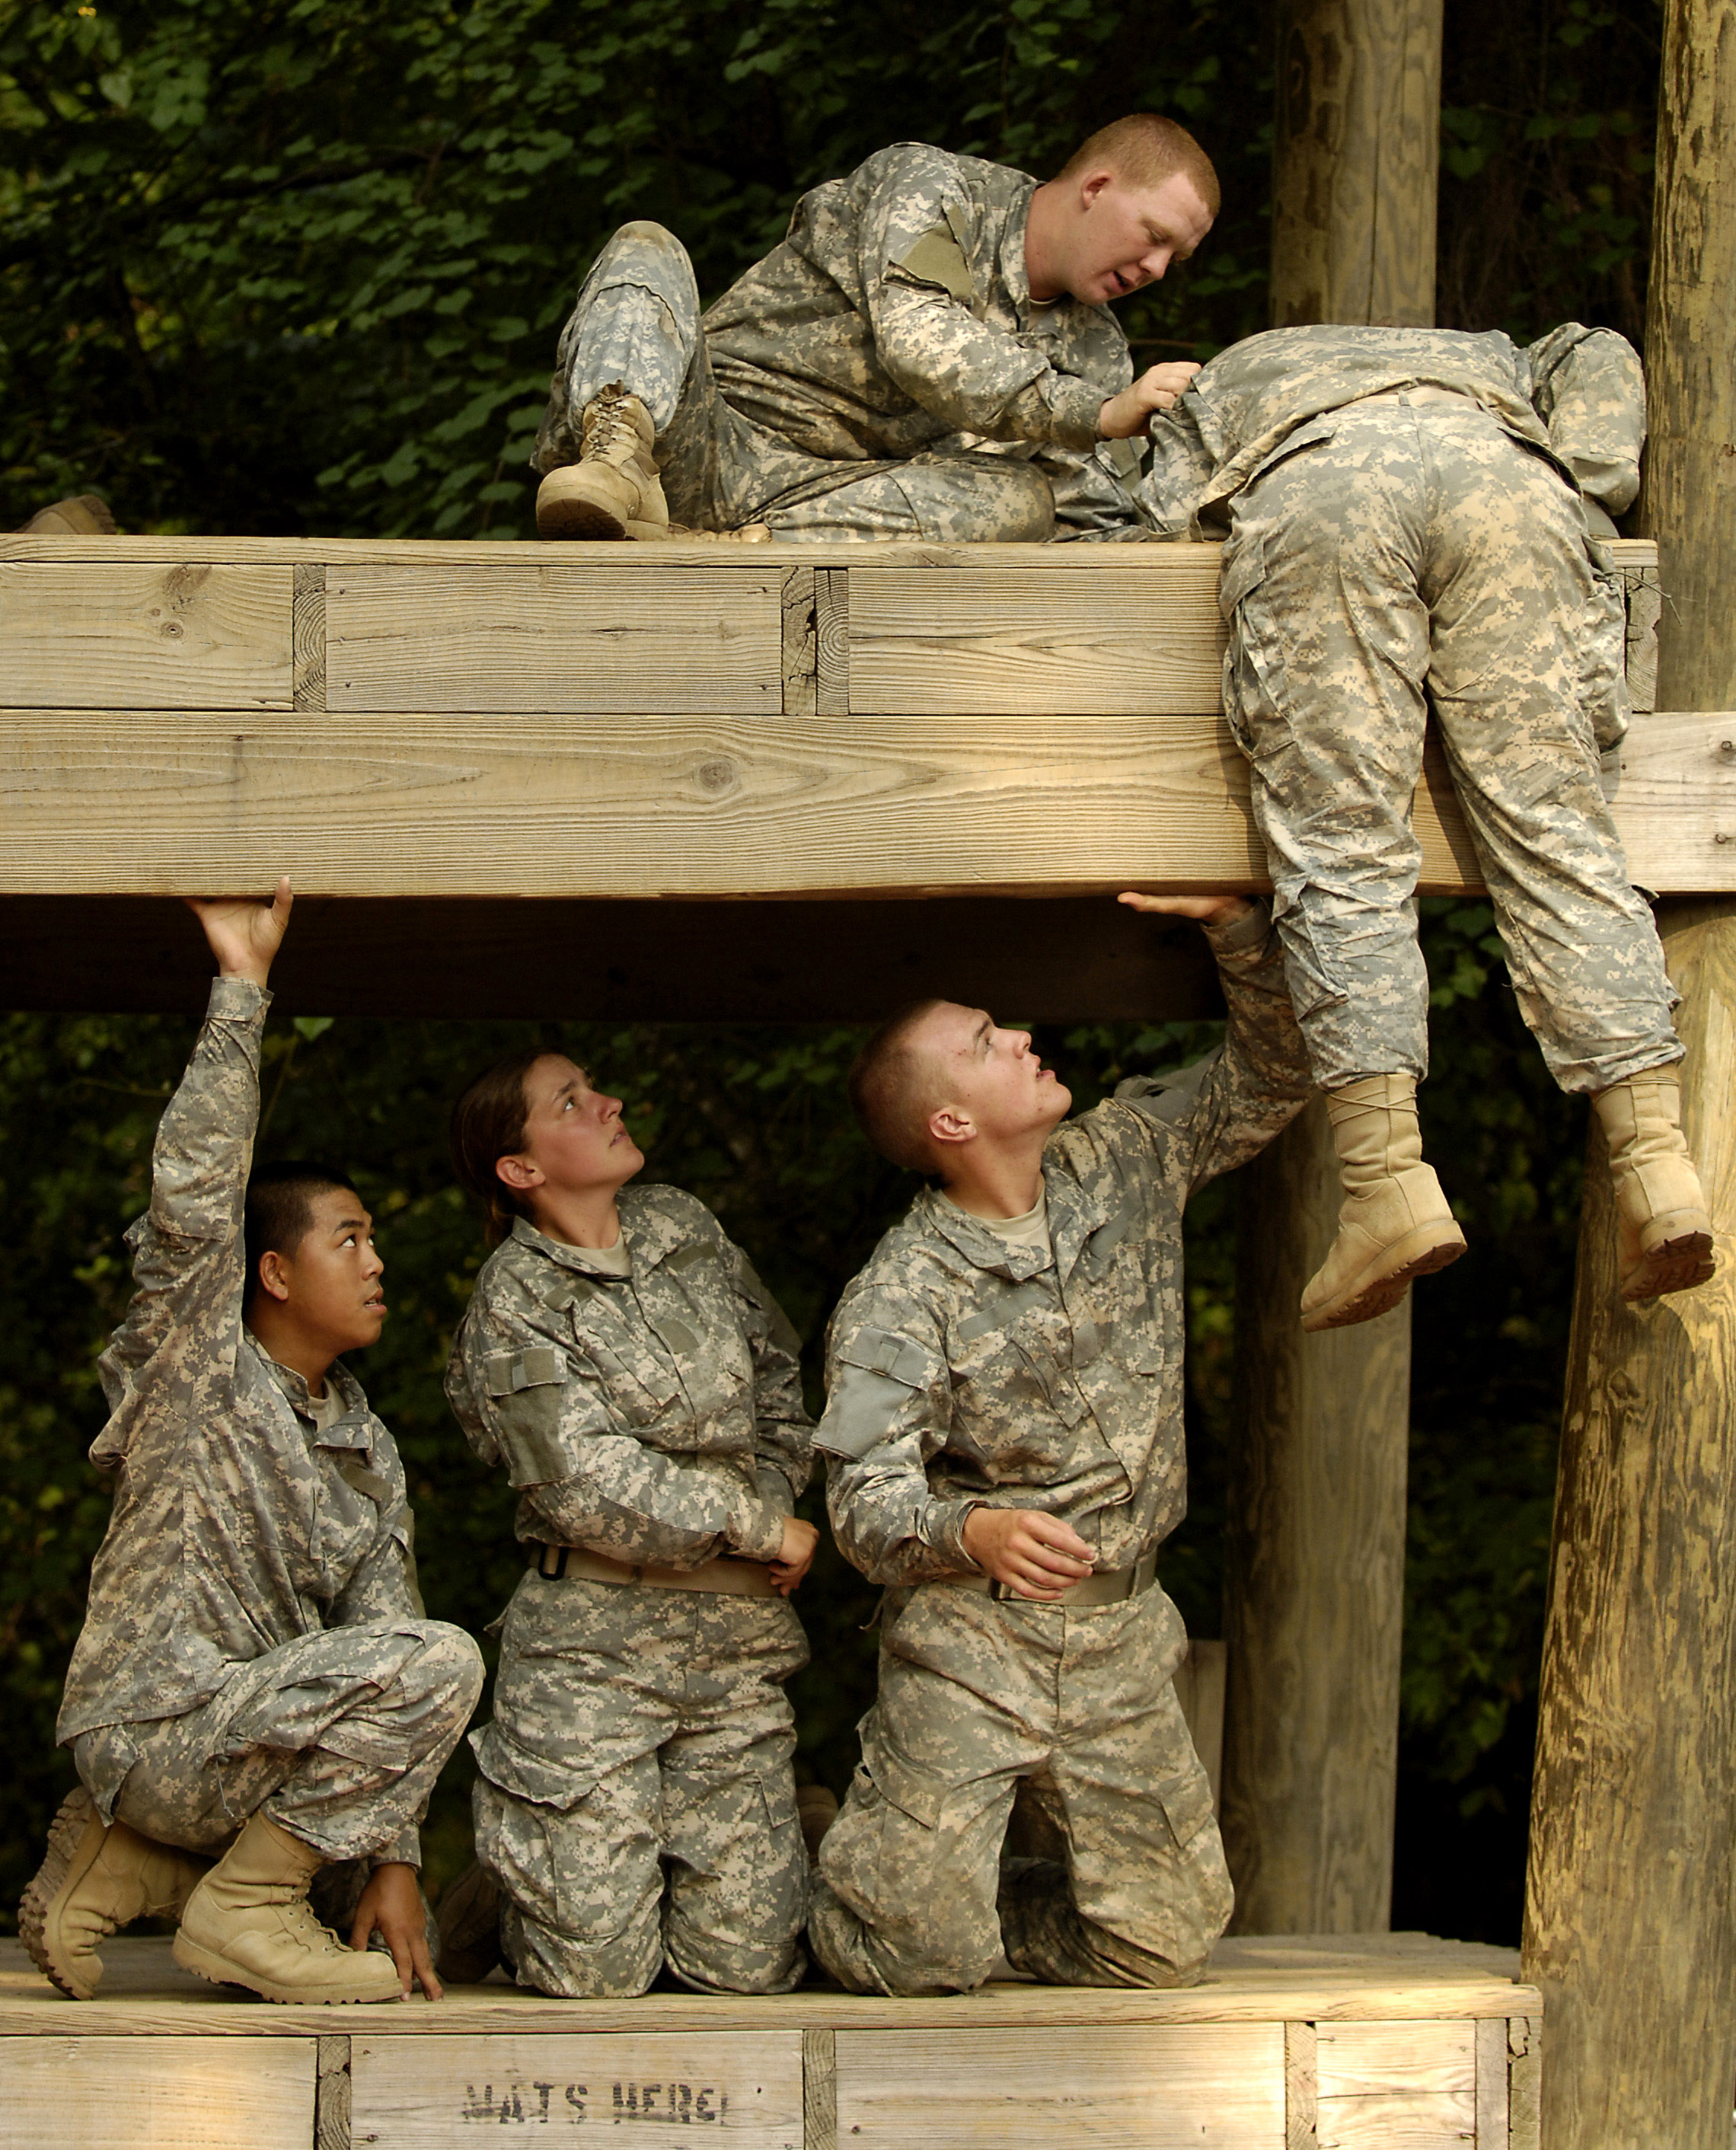 Does military fall under work? (history essay)?